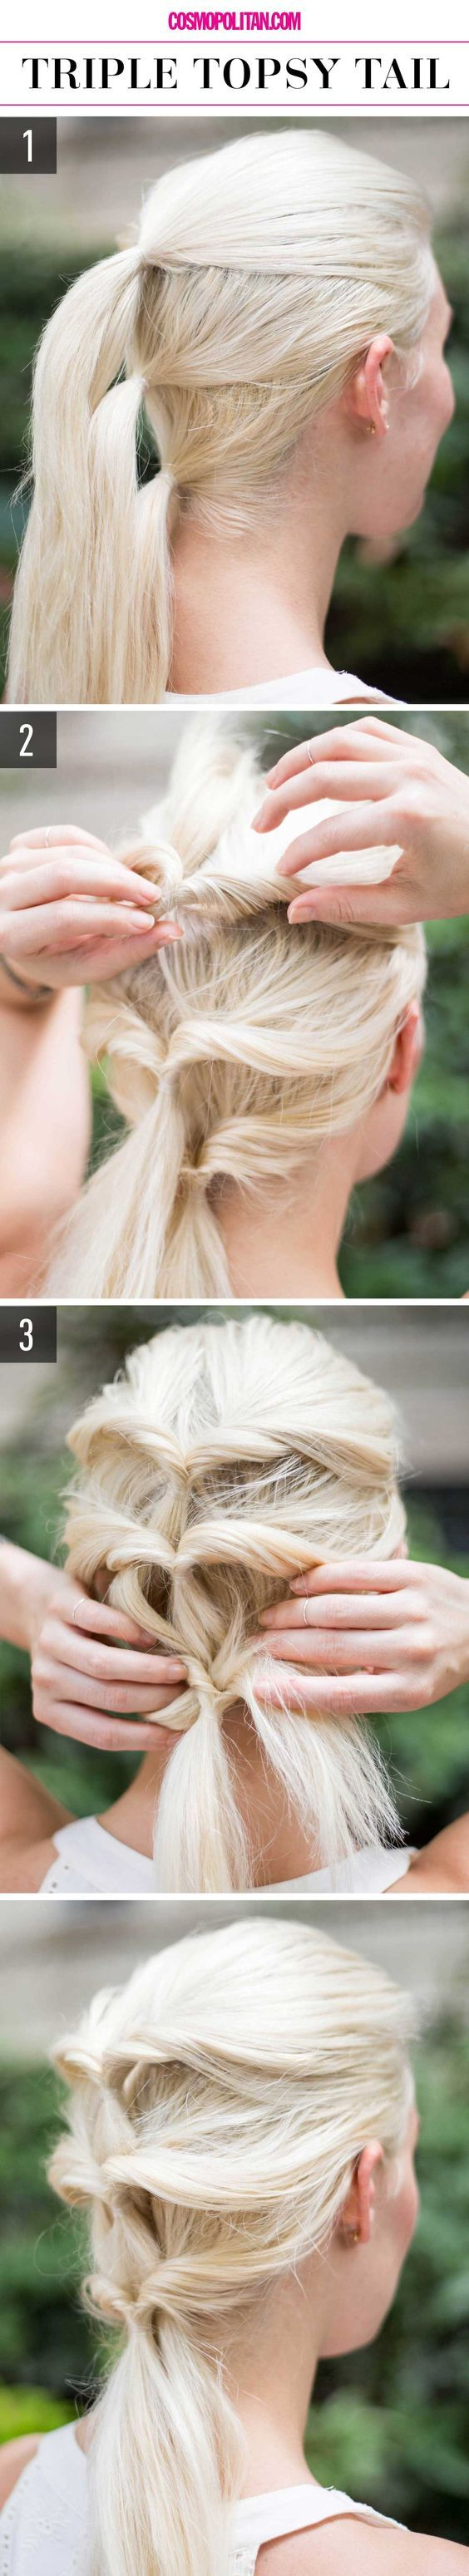 easy hair styles for hair 25 best ideas about lazy hairstyles on 6706